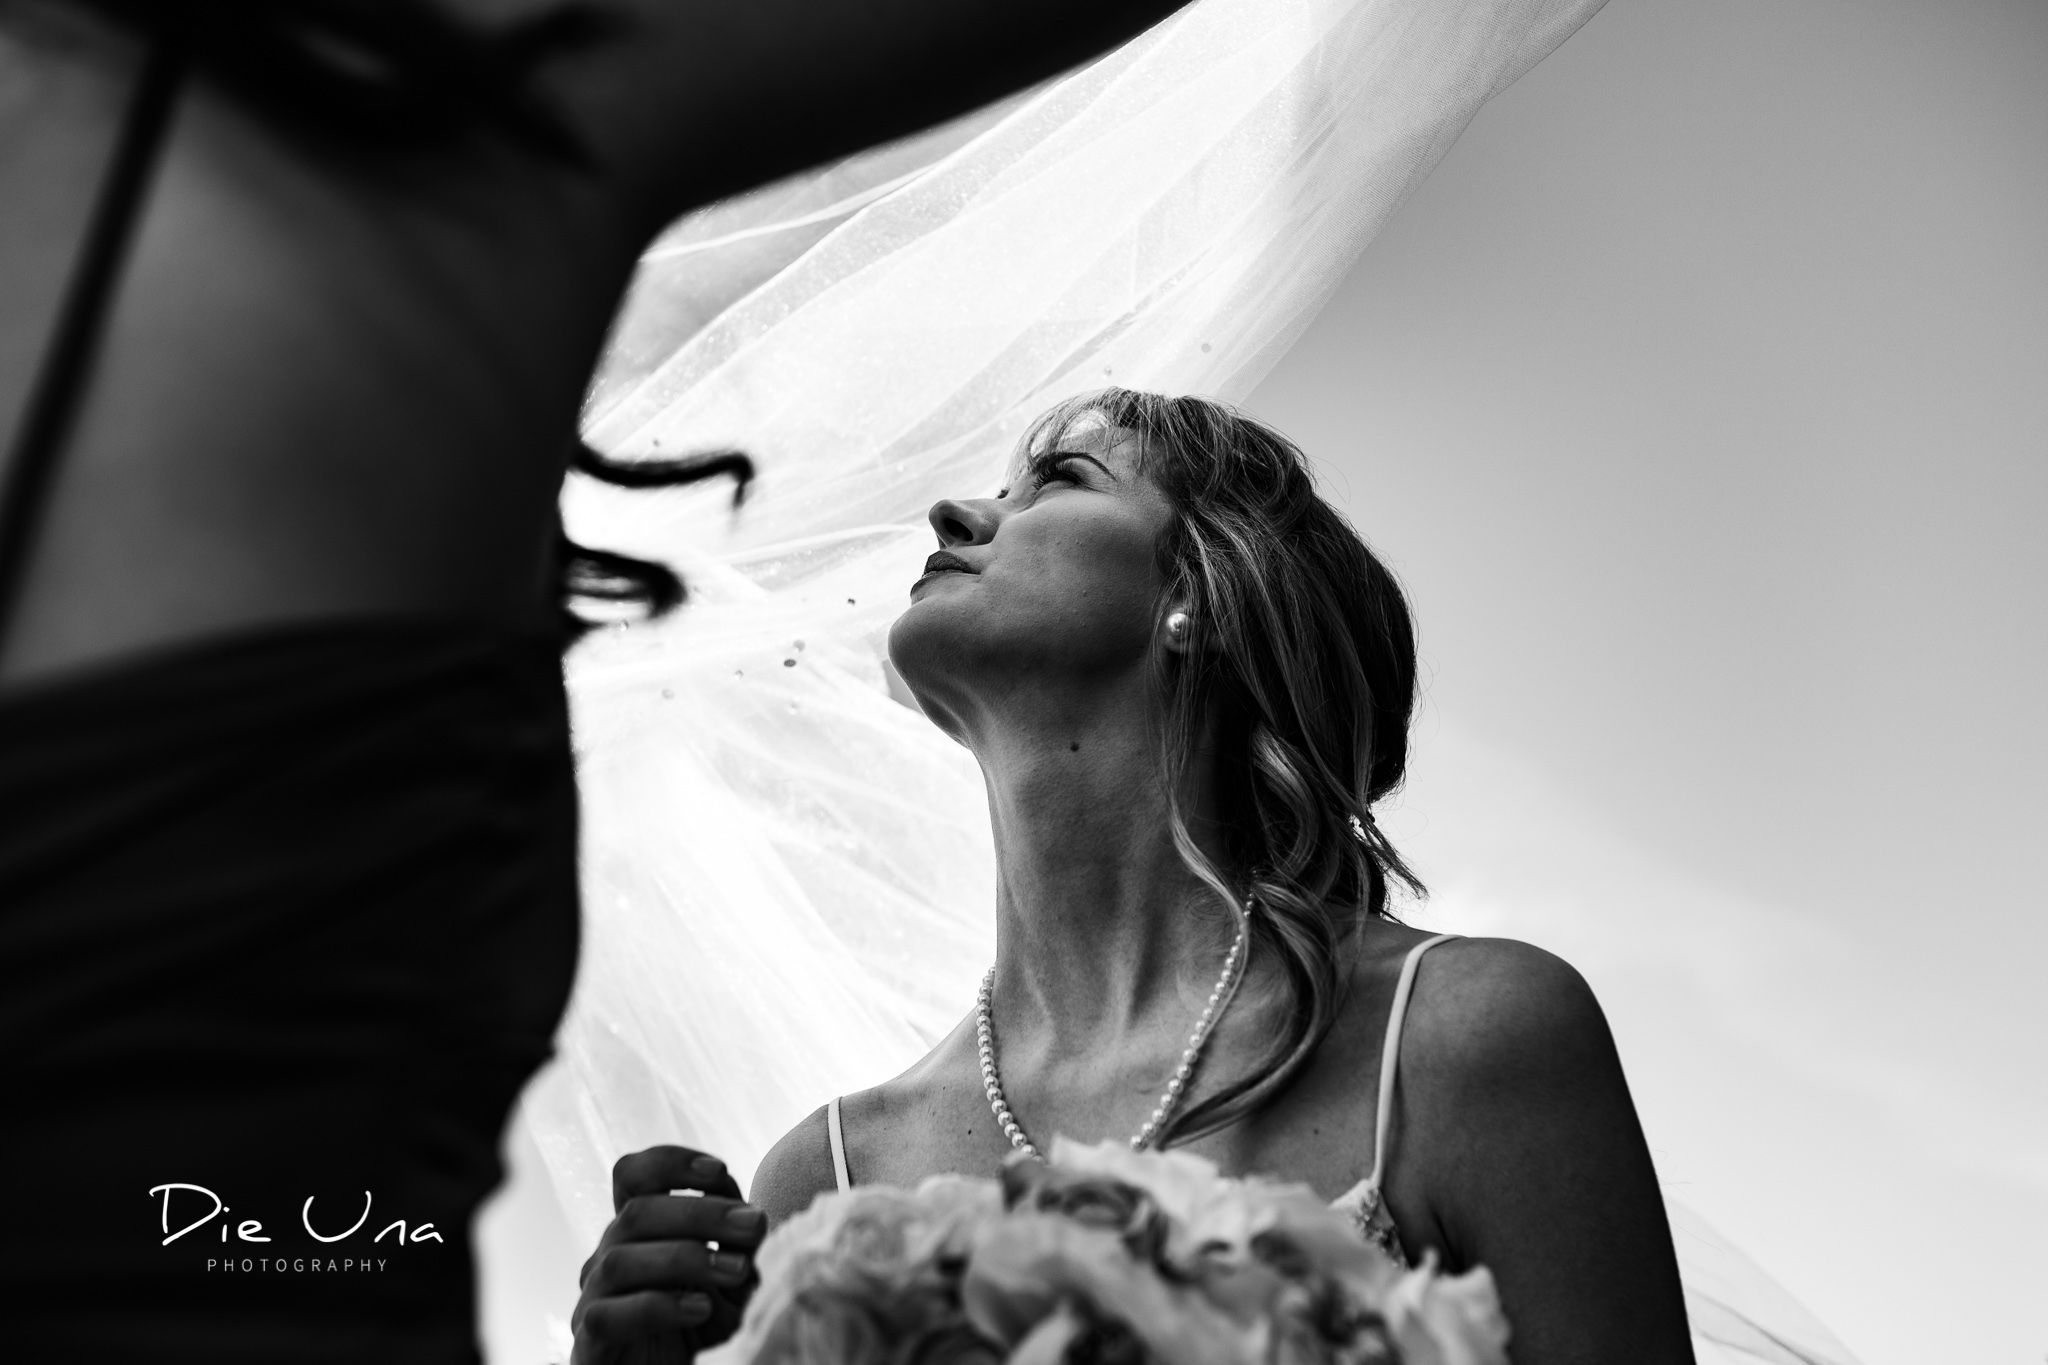 wedding veil getting blown away by wind black and white wedding photography.jpg